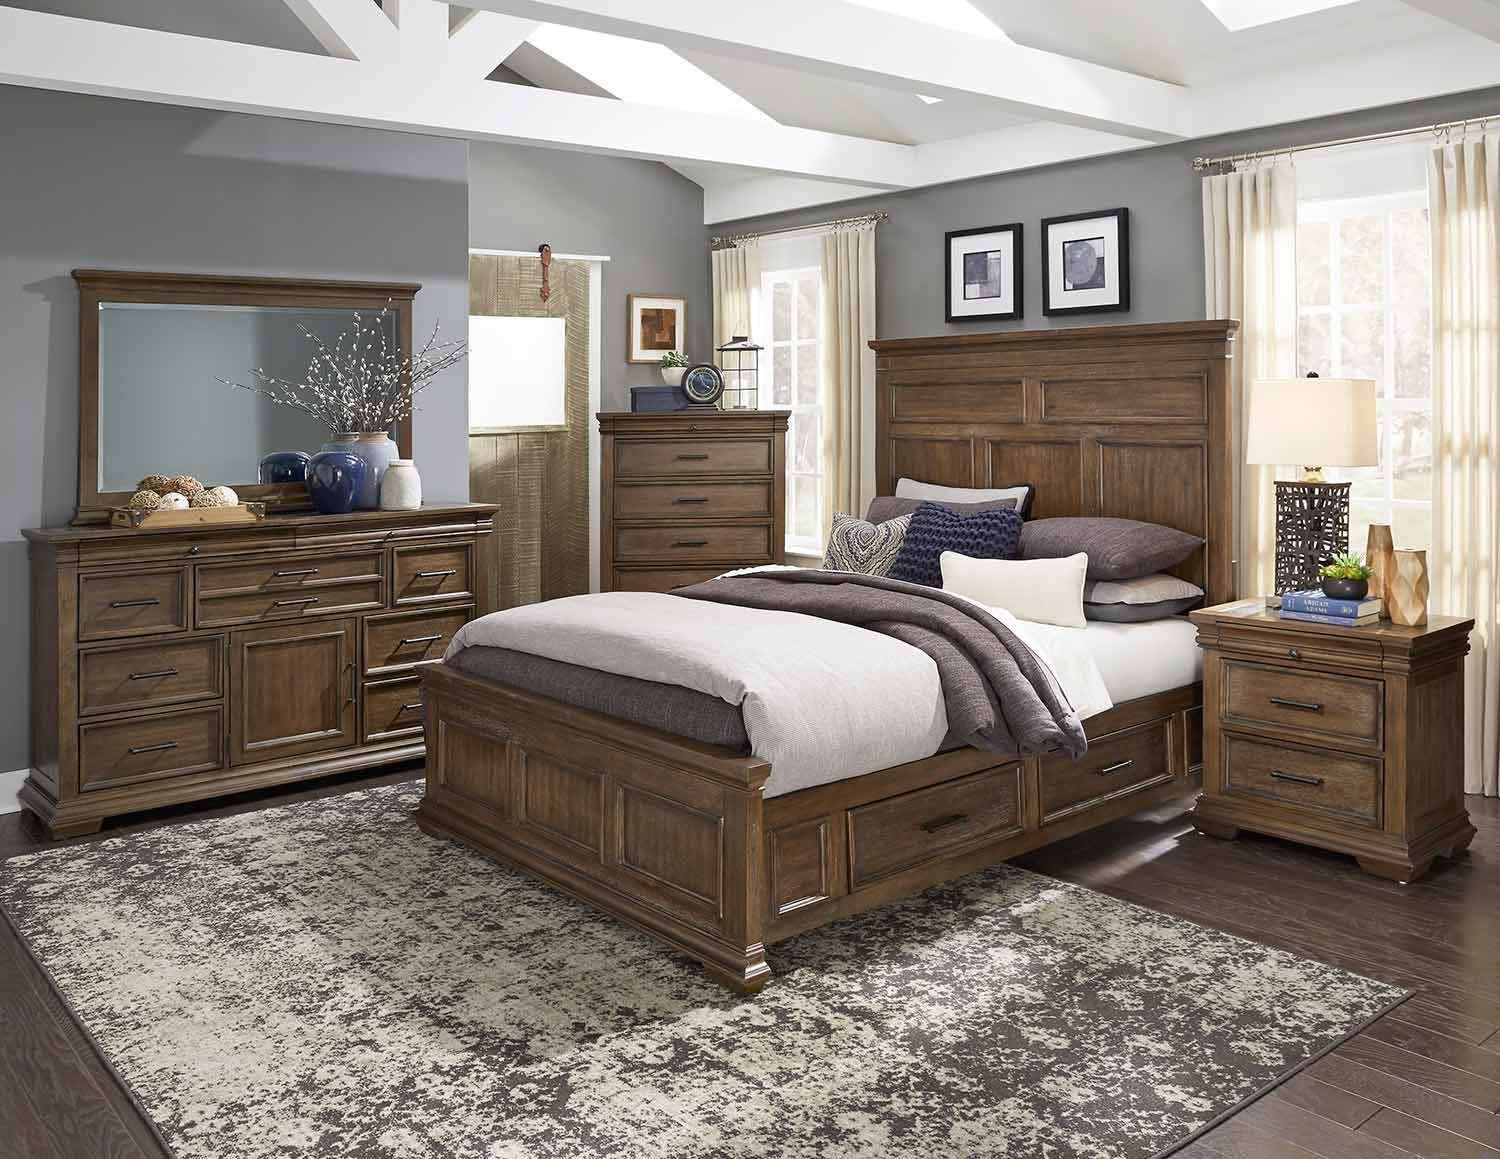 Homelegance Narcine Bedroom Set - Oak Veneer with Gray Finish